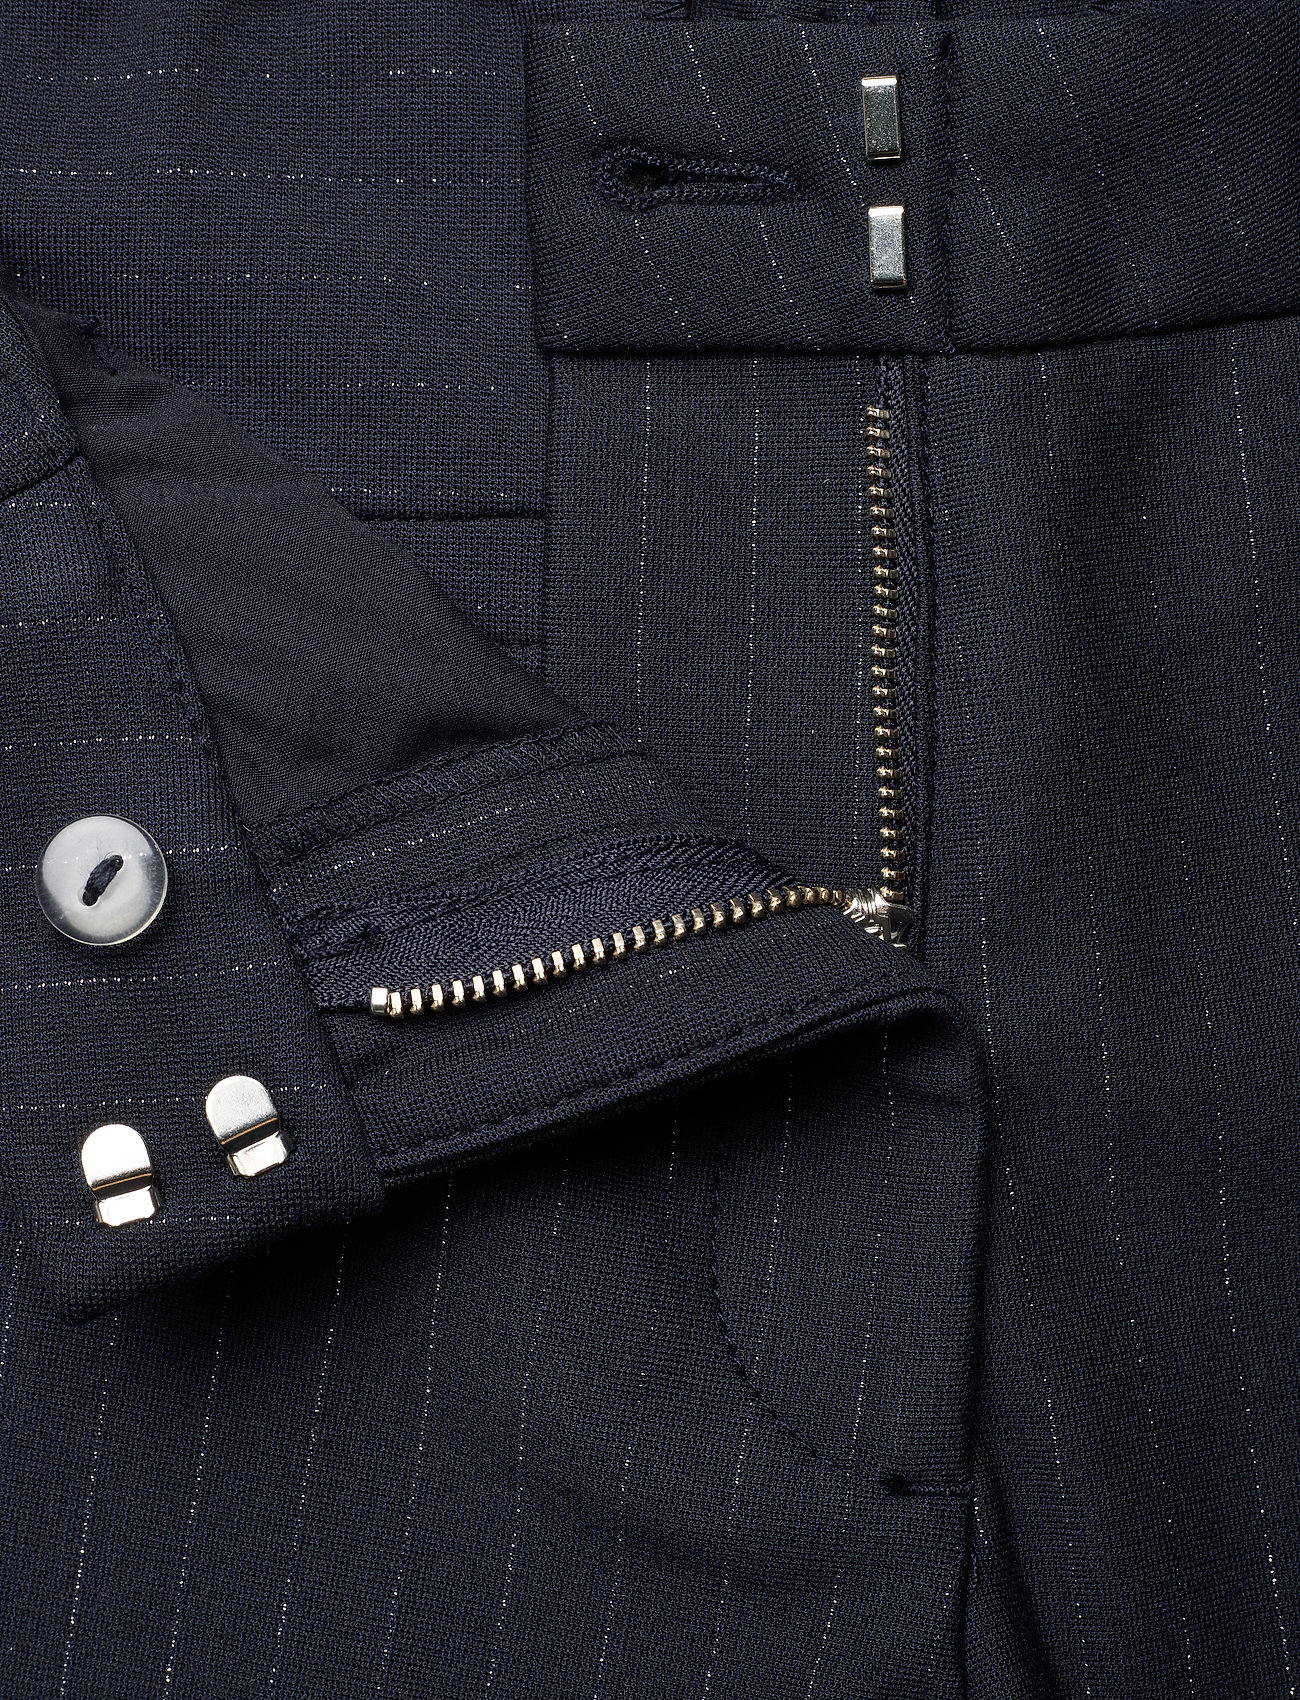 2nd One Carine 888 Navy Pins Shine (Navy Pins Shine) 239.70 kr | Stort utbud av designermärken ZlHls9gd